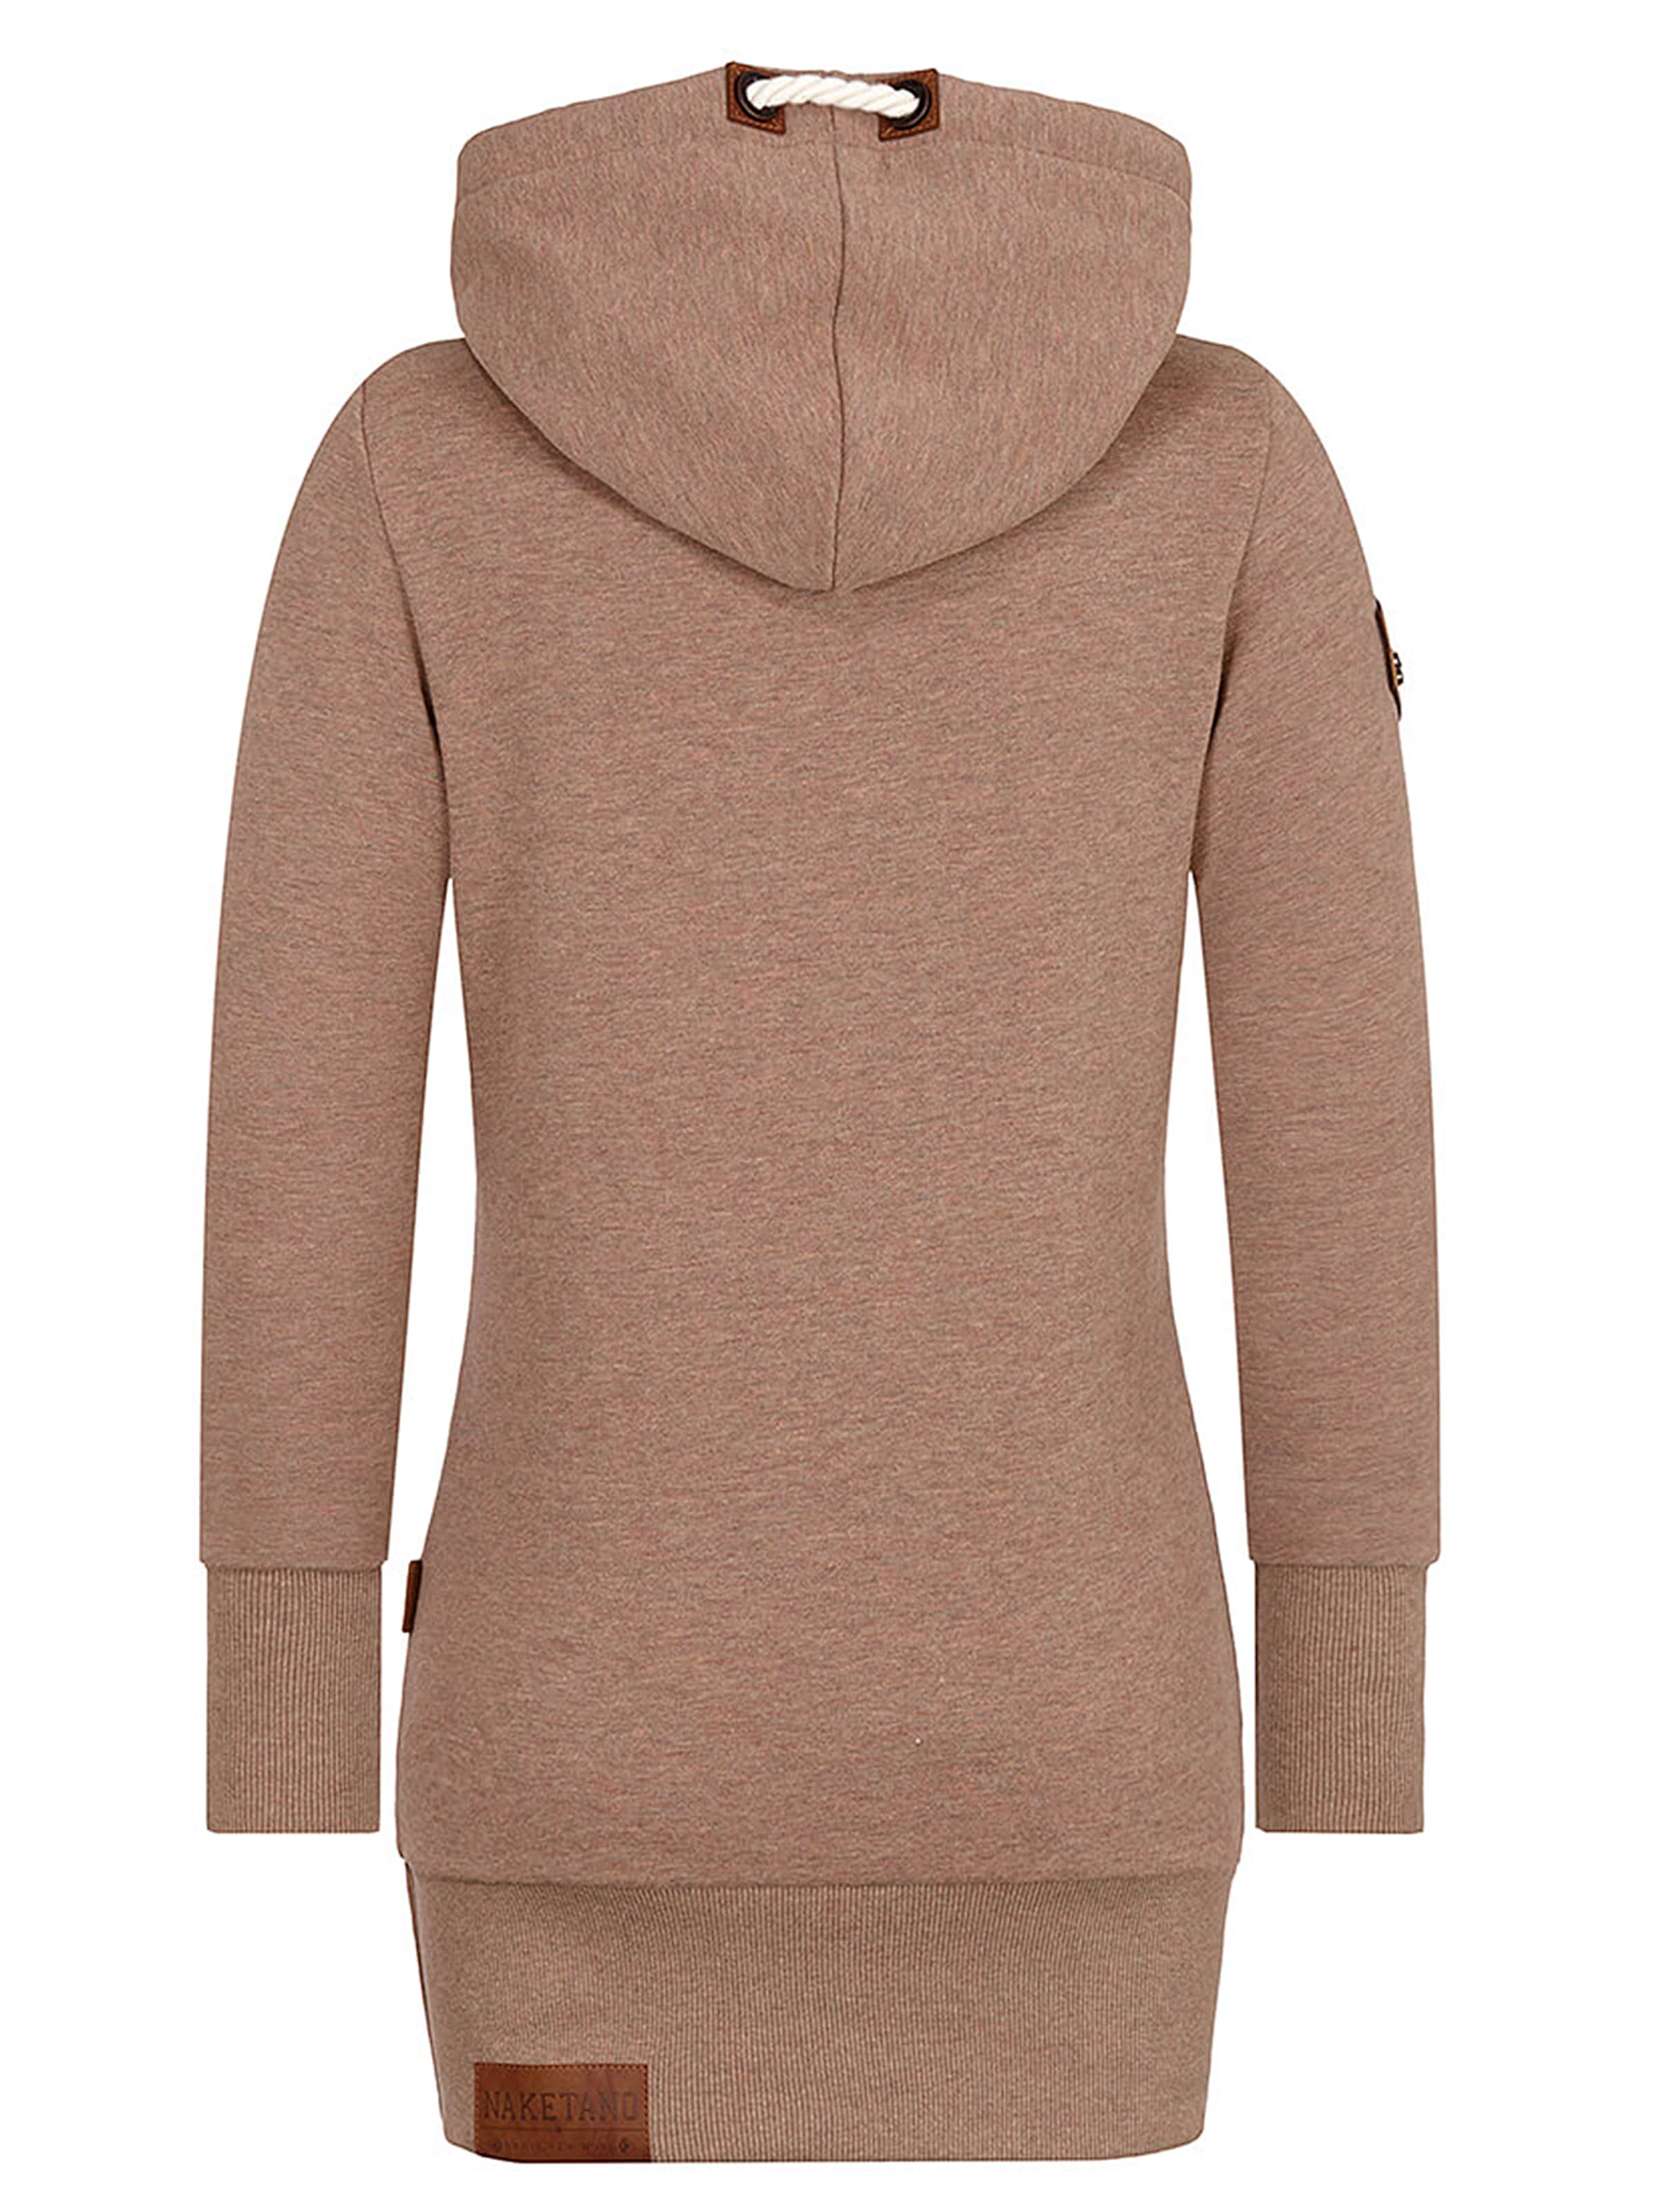 Taupe 'darth En Sweat shirt Naketano Long' fgyYIb76v